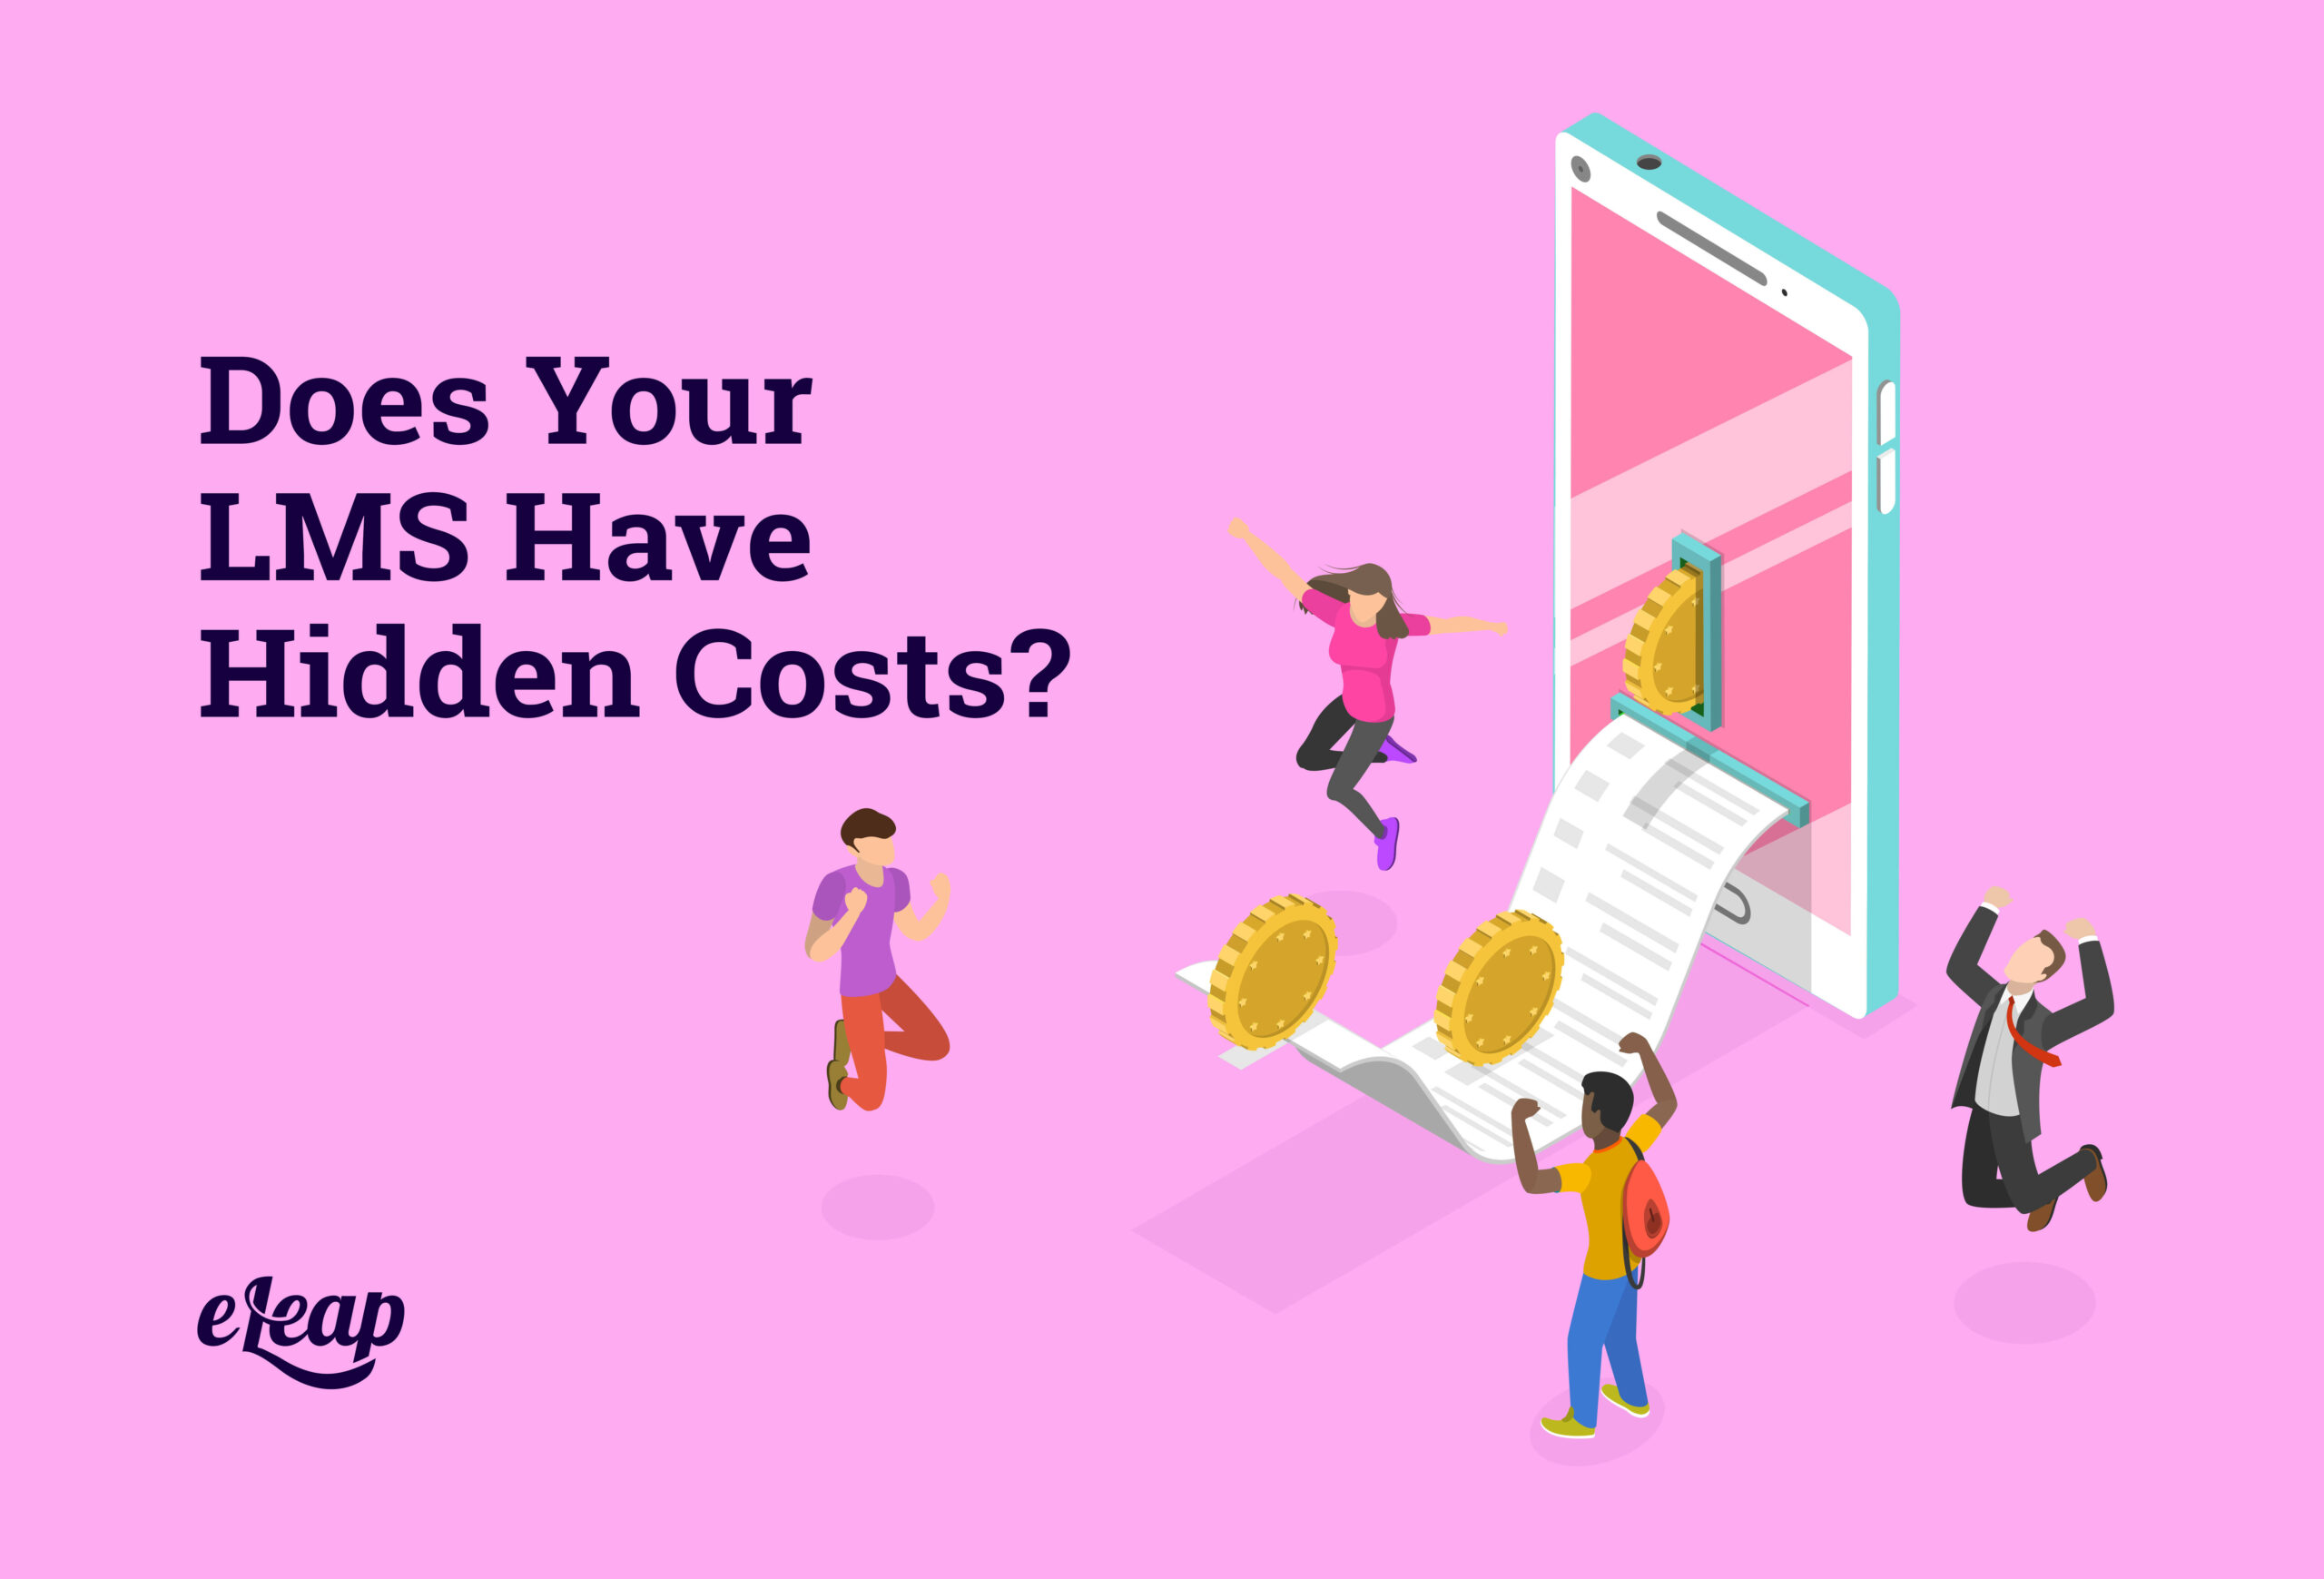 Does Your LMS Have Hidden Costs?